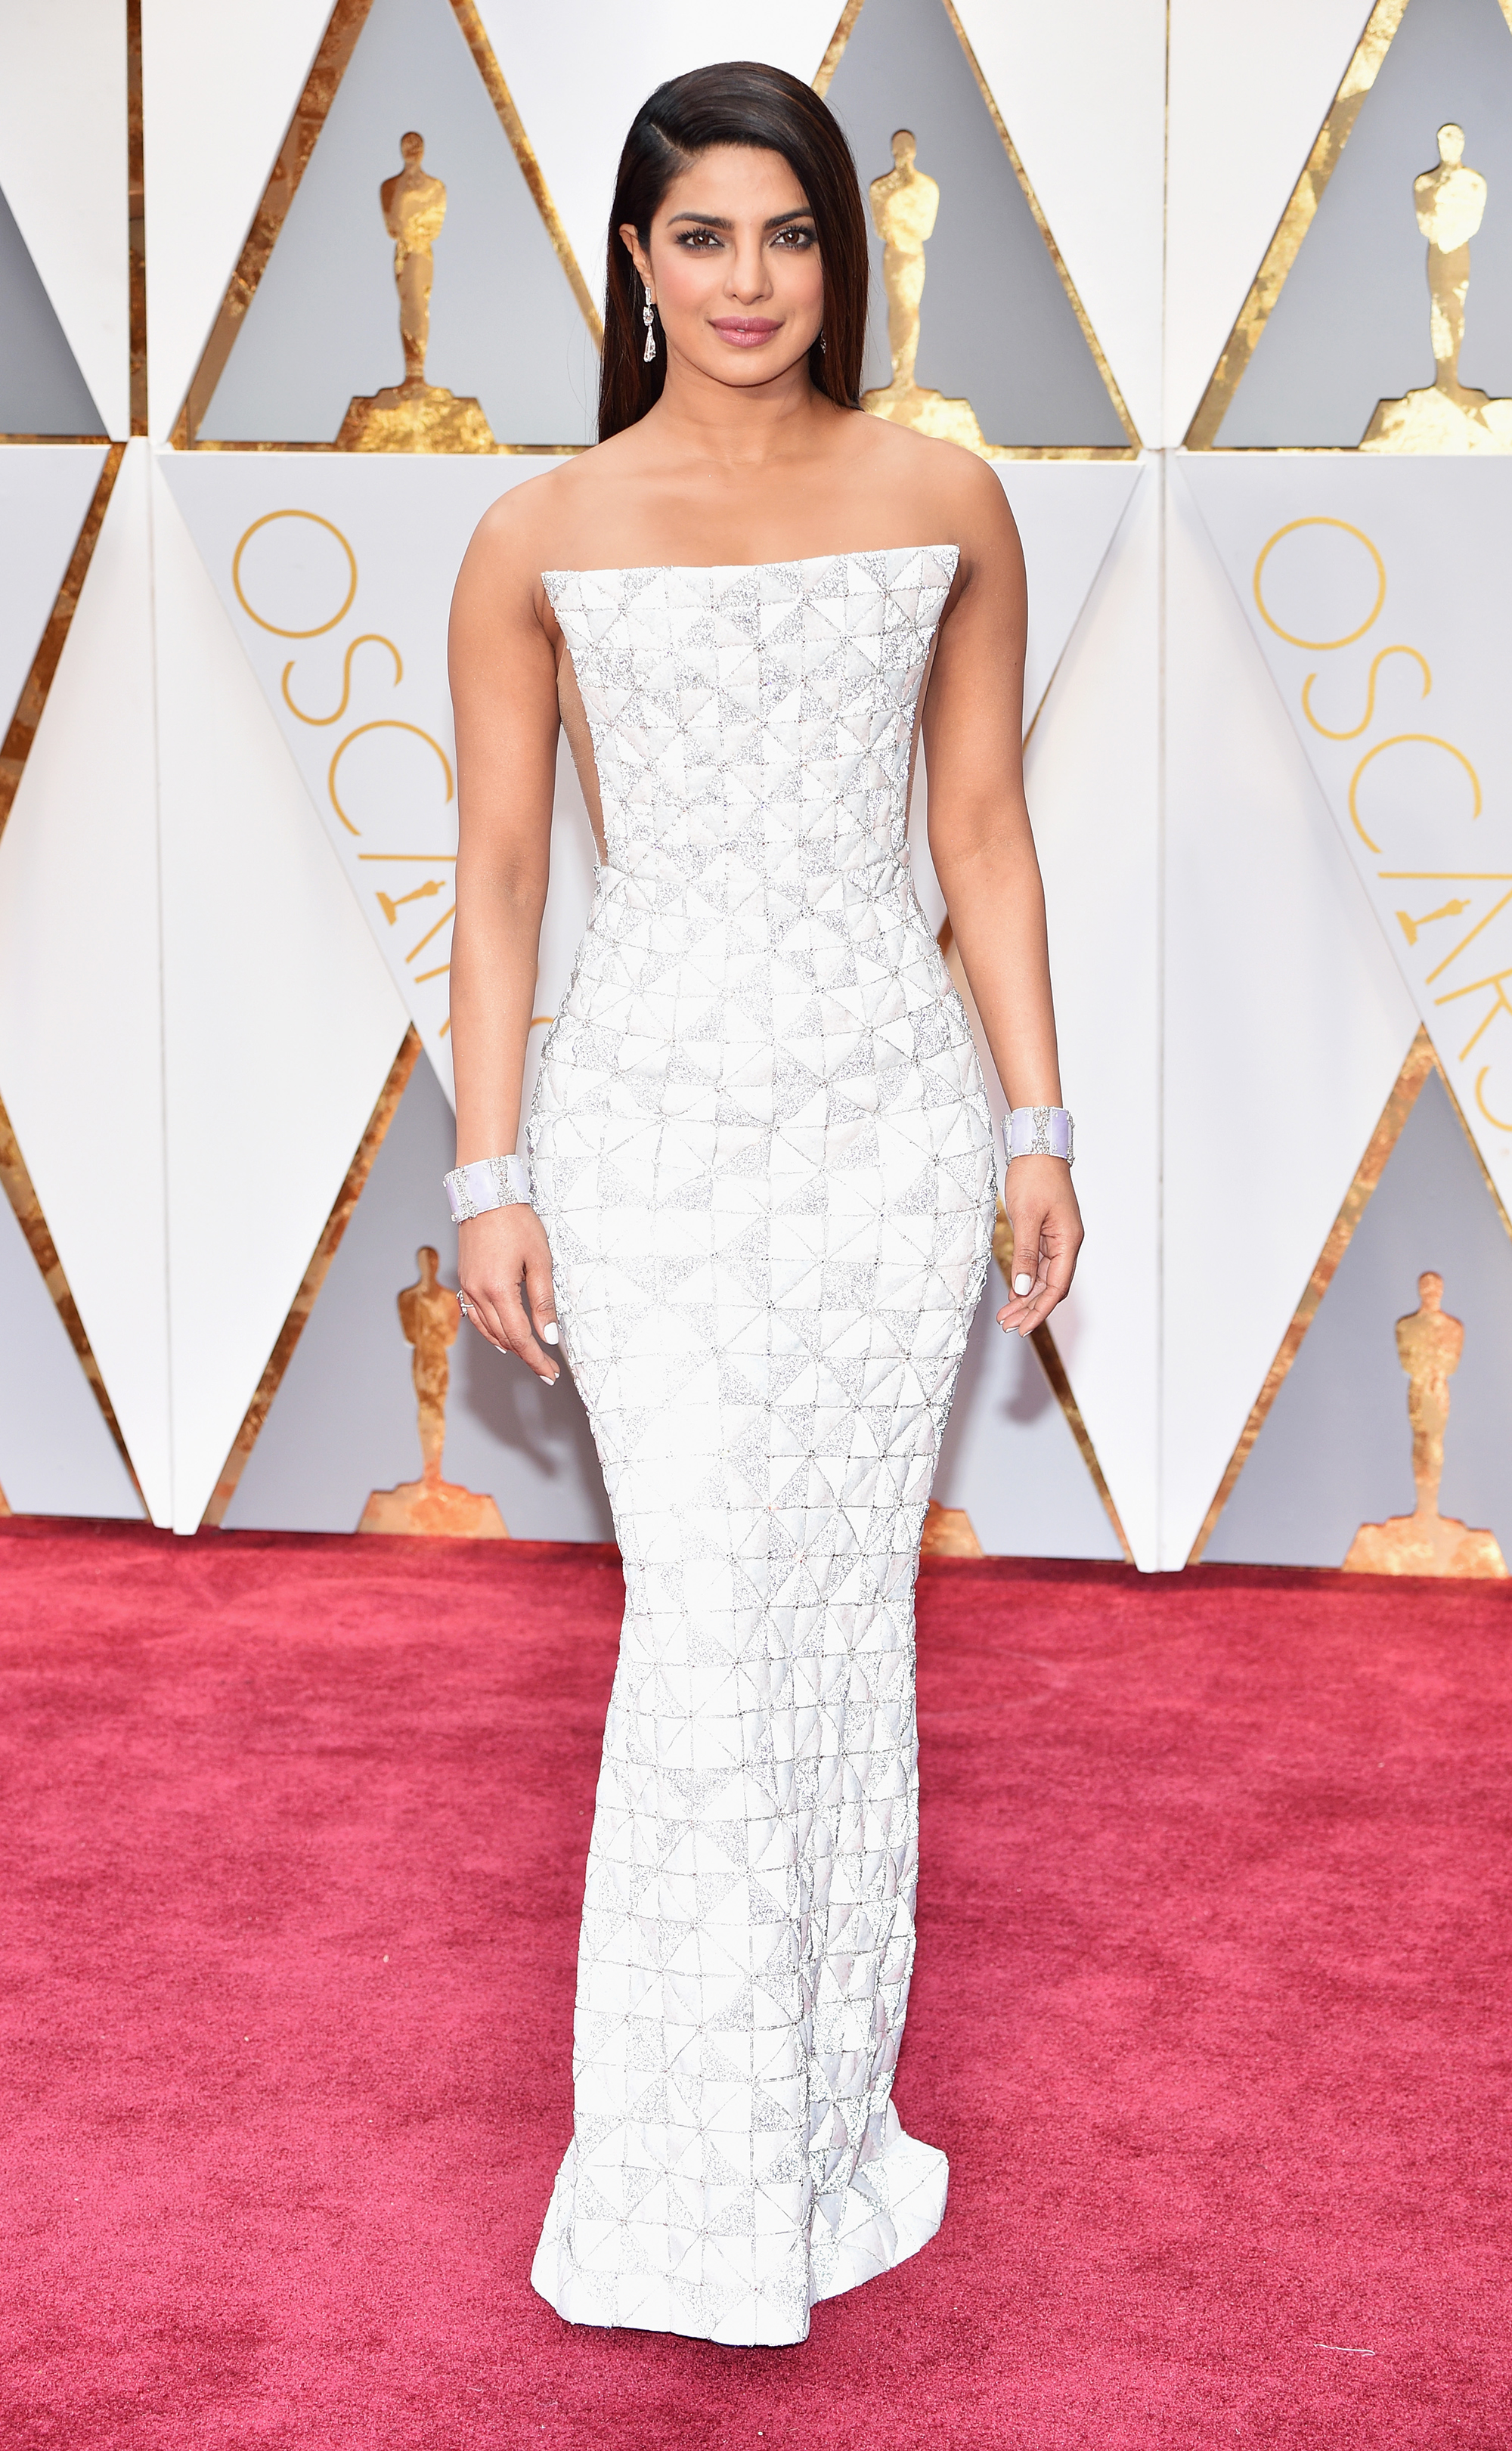 Priyanka Chopra on the red carpet for the 89th Oscars, on Feb. 26, 2017 in Hollywood, Calif.